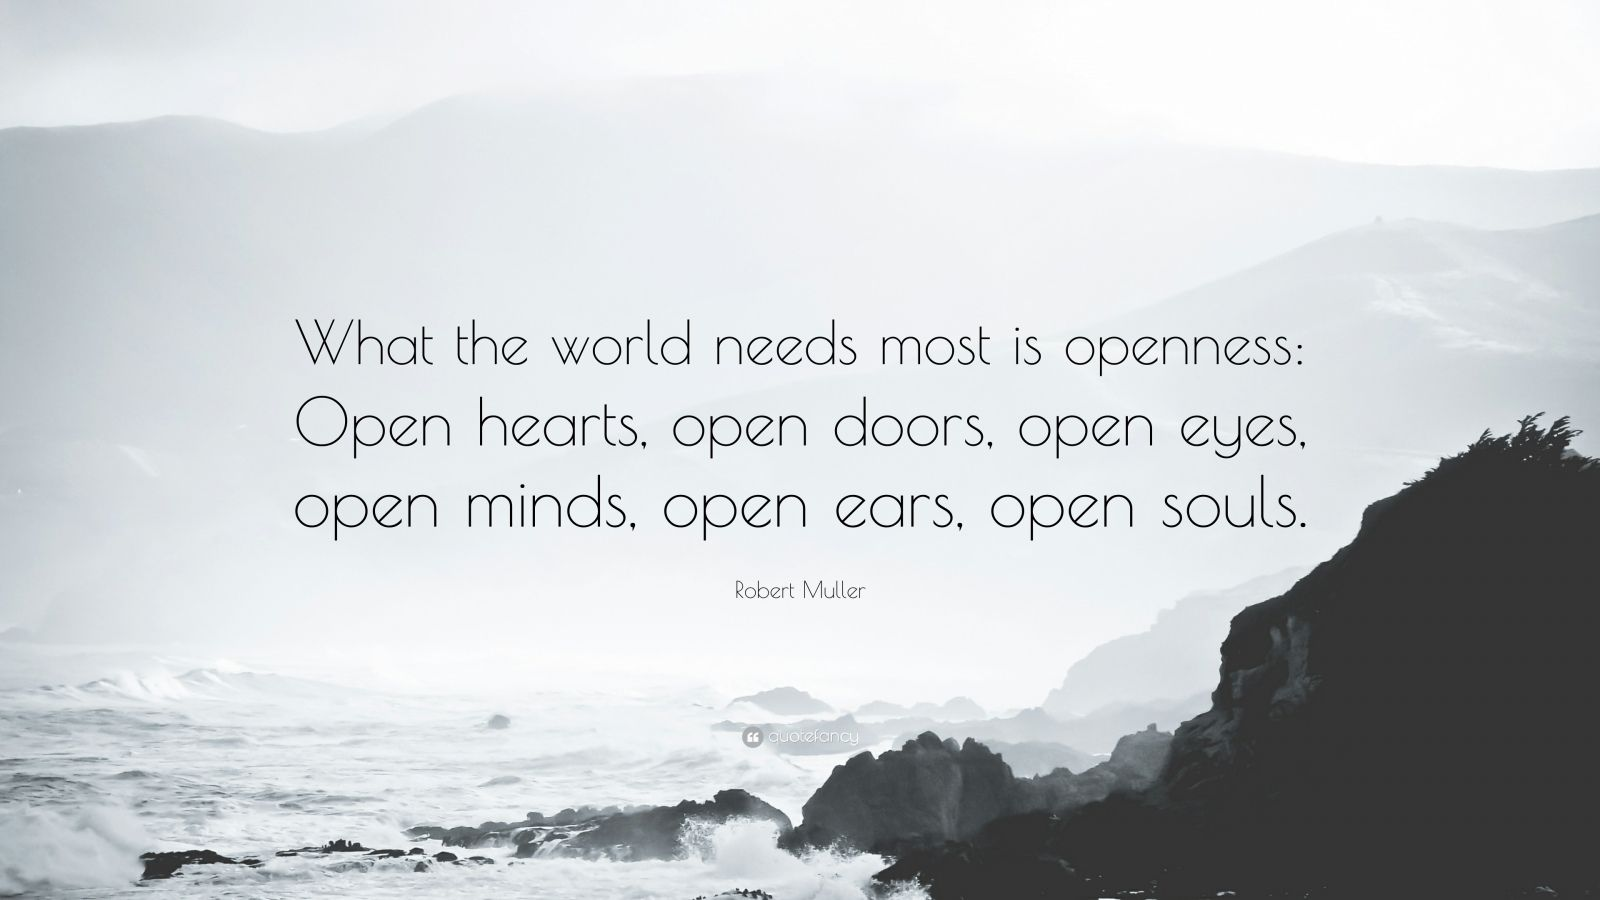 """Robert Muller Quote: """"What the world needs most is openness: Open hearts, open doors, open eyes, open minds, open ears, open souls."""""""